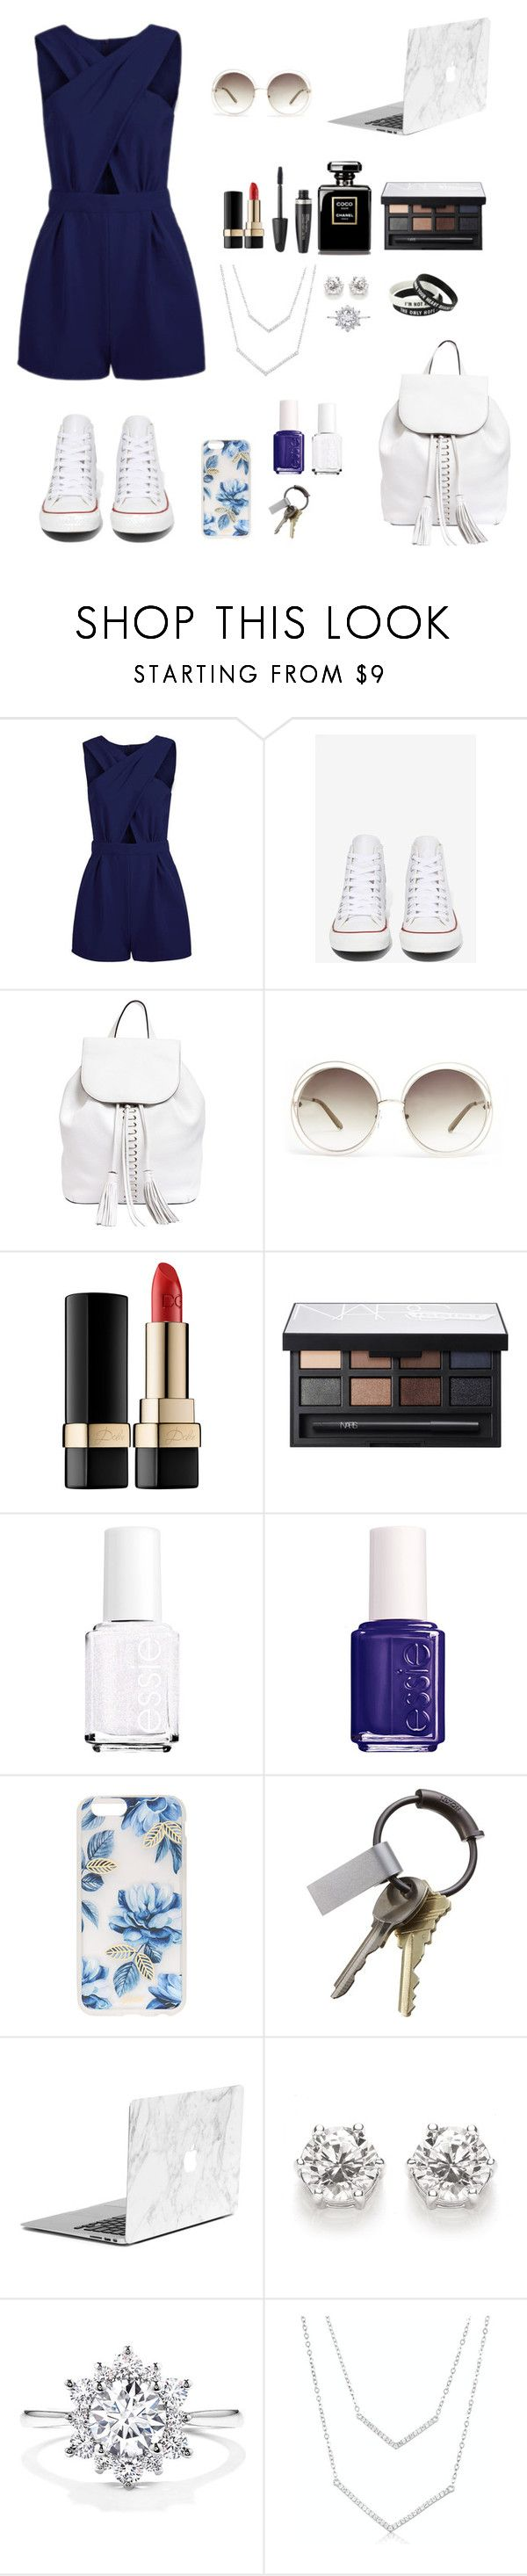 """""""Sporty look"""" by eaton05 ❤ liked on Polyvore featuring Converse, Rebecca Minkoff, Chloé, Dolce&Gabbana, Max Factor, NARS Cosmetics, Essie, Sonix, CB2 and women's clothing"""